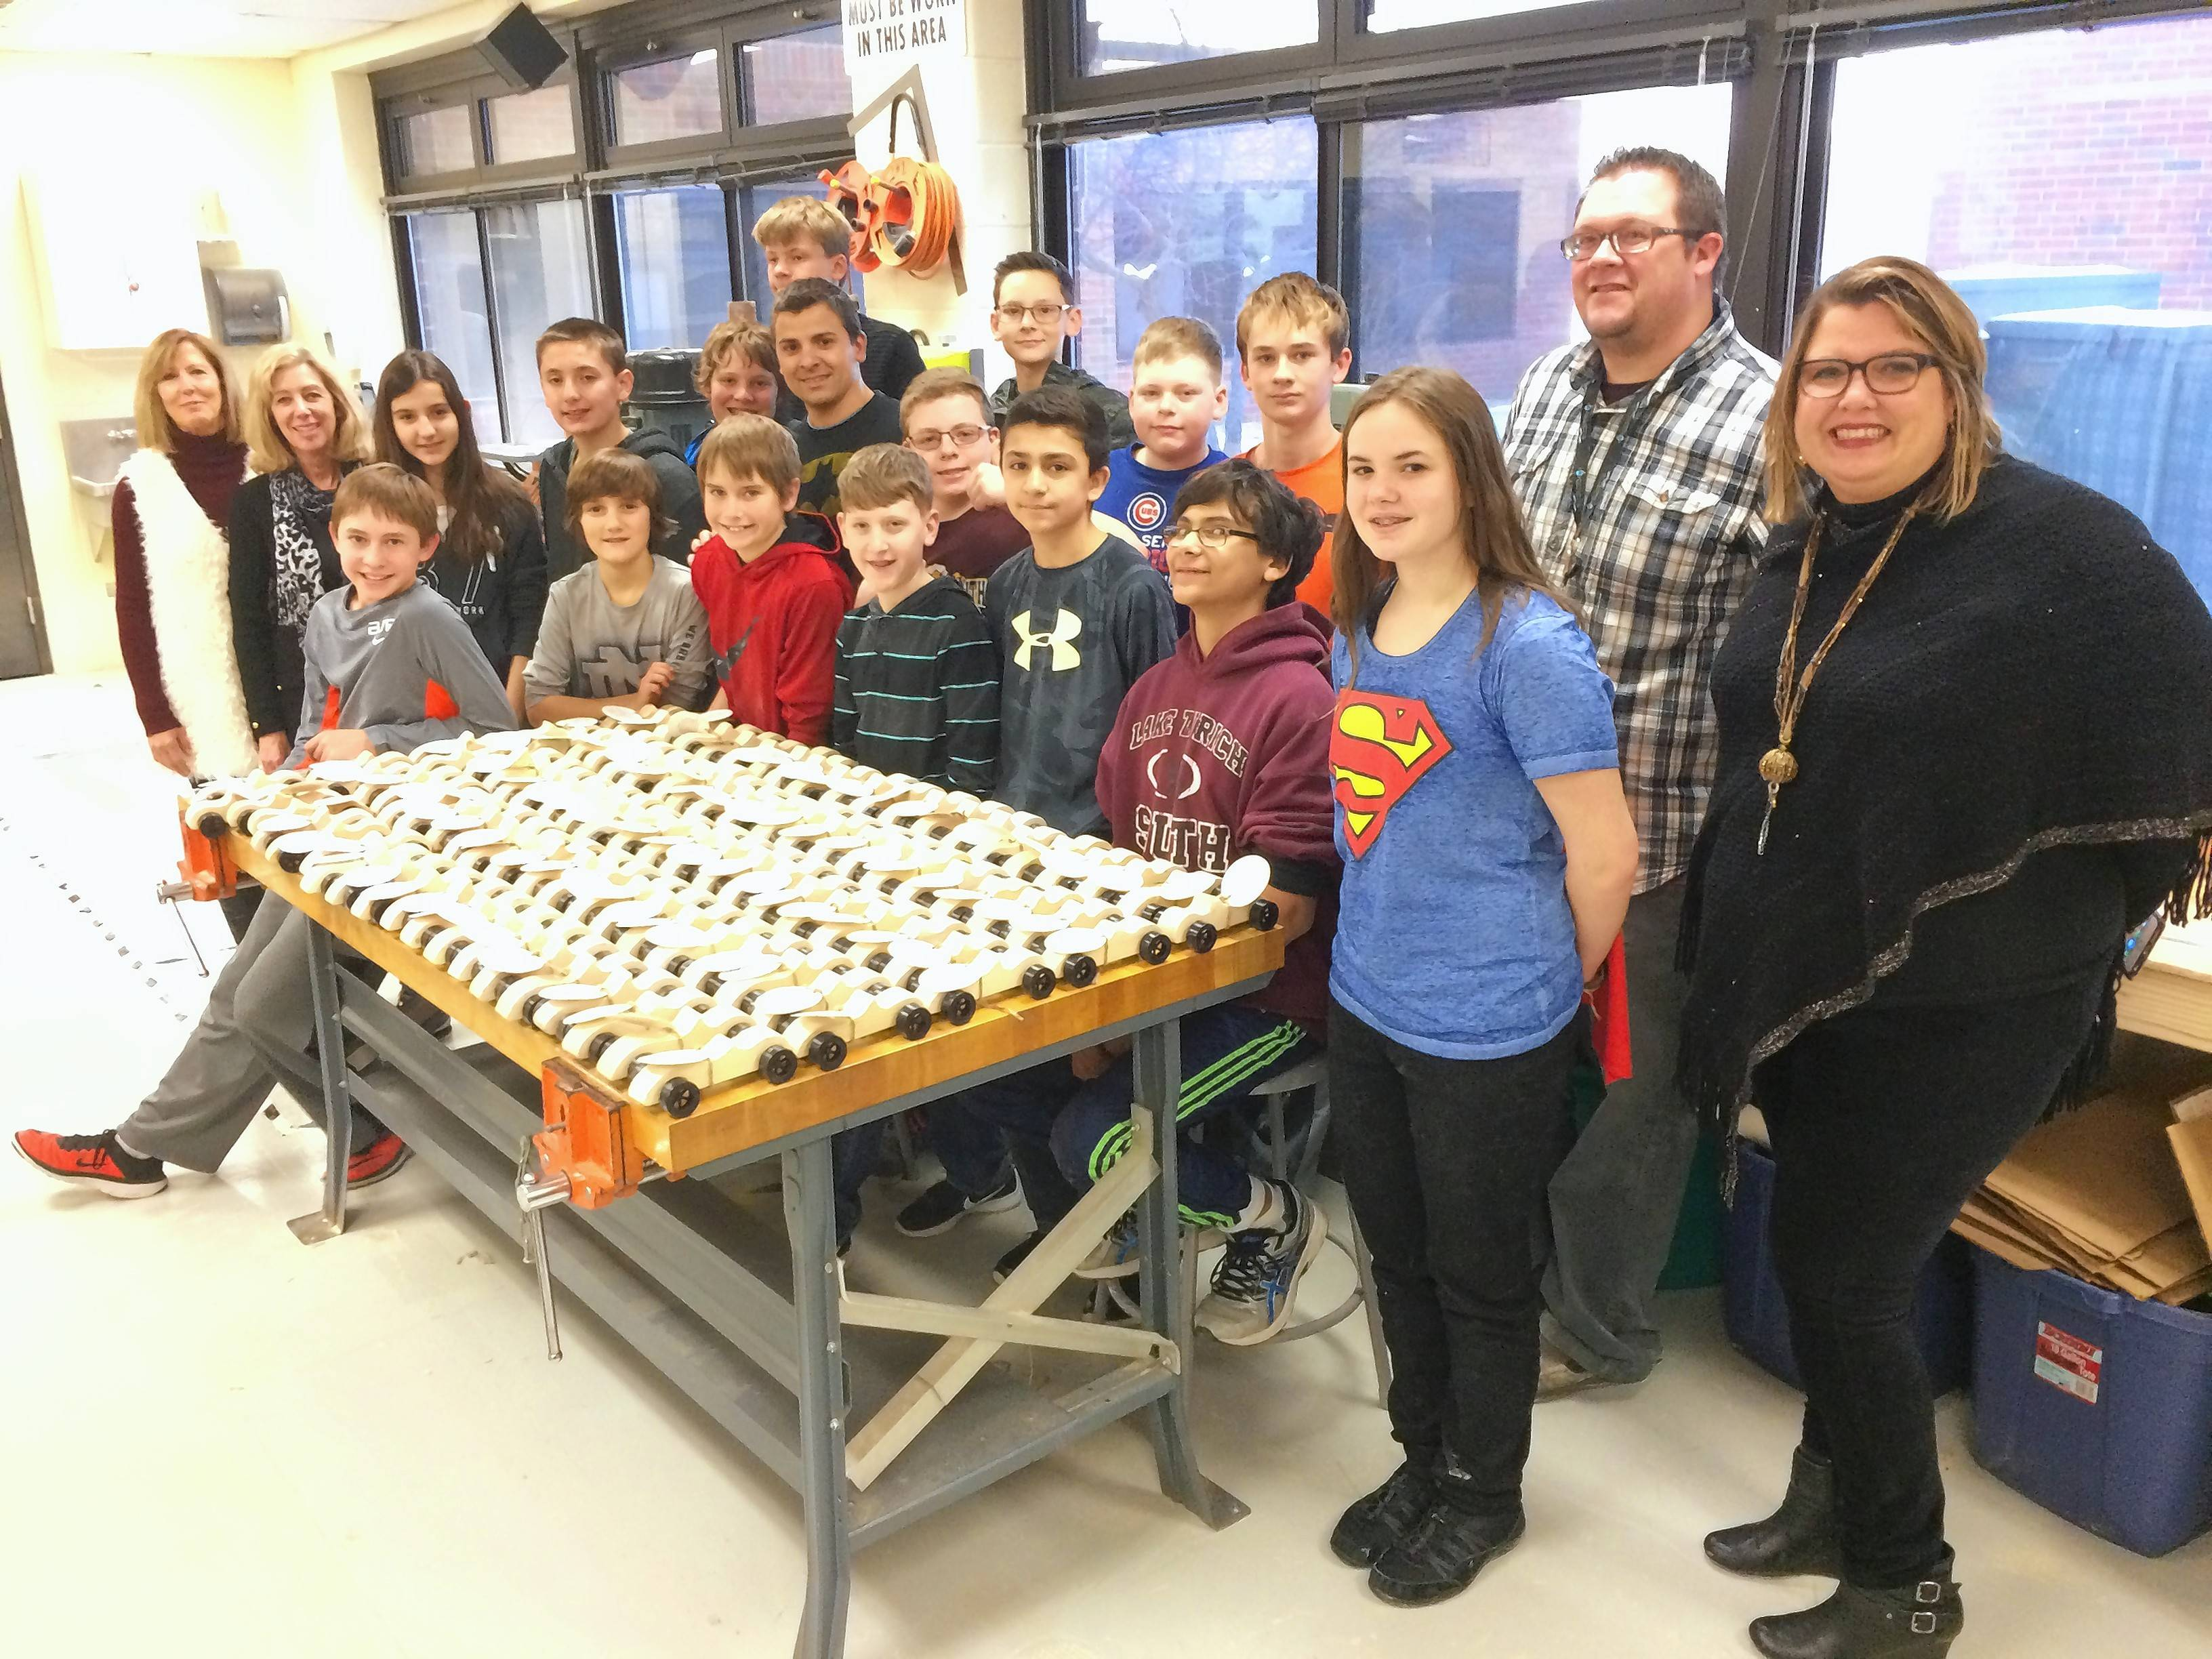 Members of Caring Women's Connection of Hawthorn Woods and Lake Zurich Middle School South woodworking club members gather Wednesday for a group shot after the students presented 100 toy cars to the nonprofit organization to donate to less fortunate children.